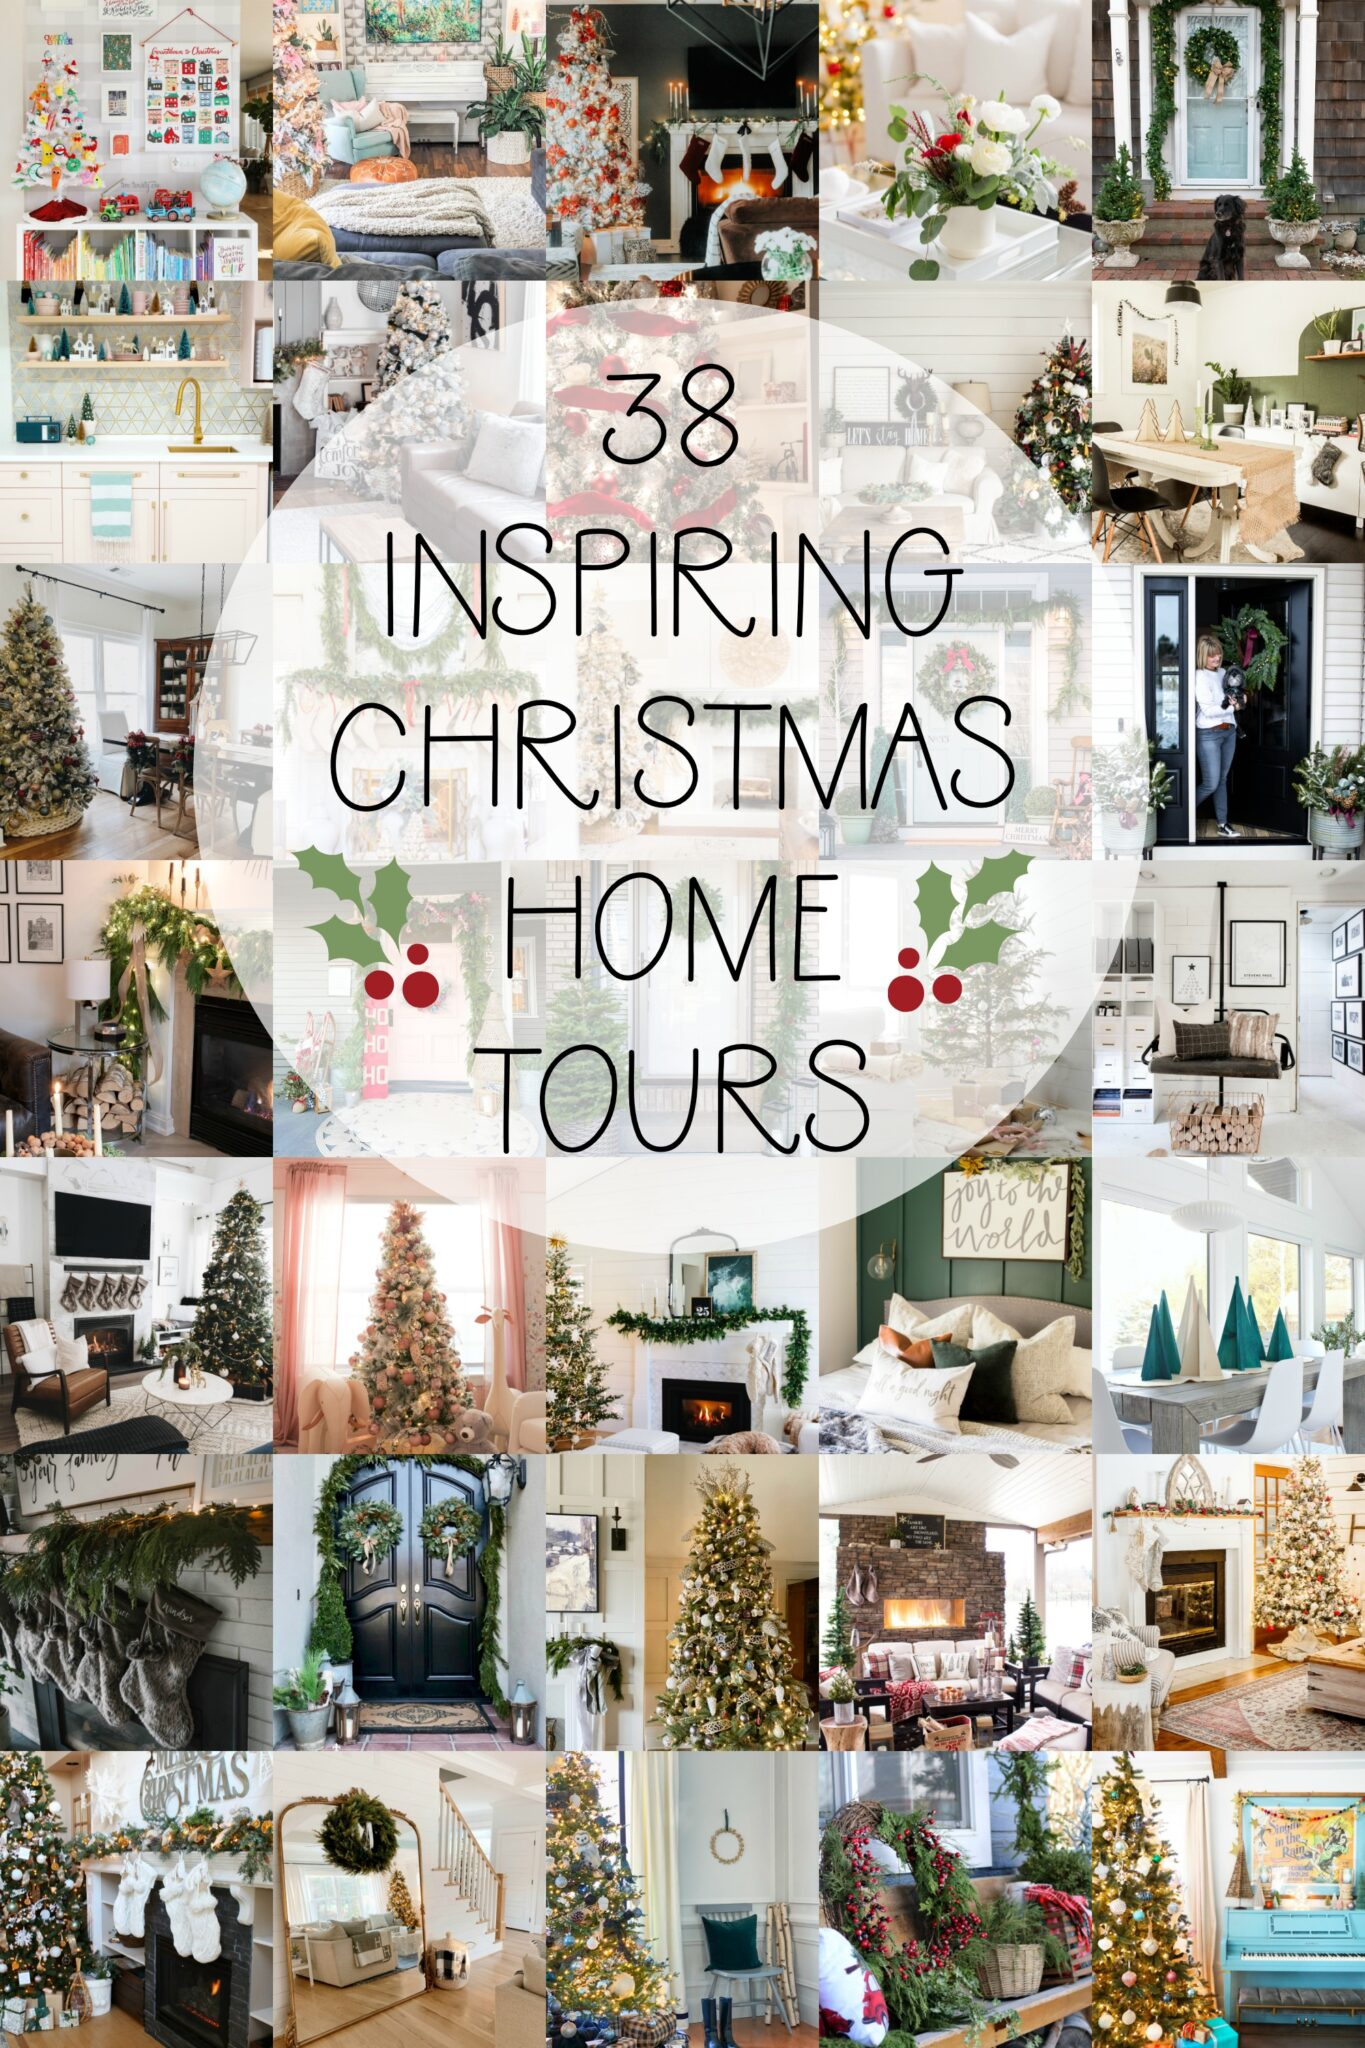 Tropical Vibes Cozy Christmas Home & Camper Tour All Things with Purpose Sarah Lemp 5